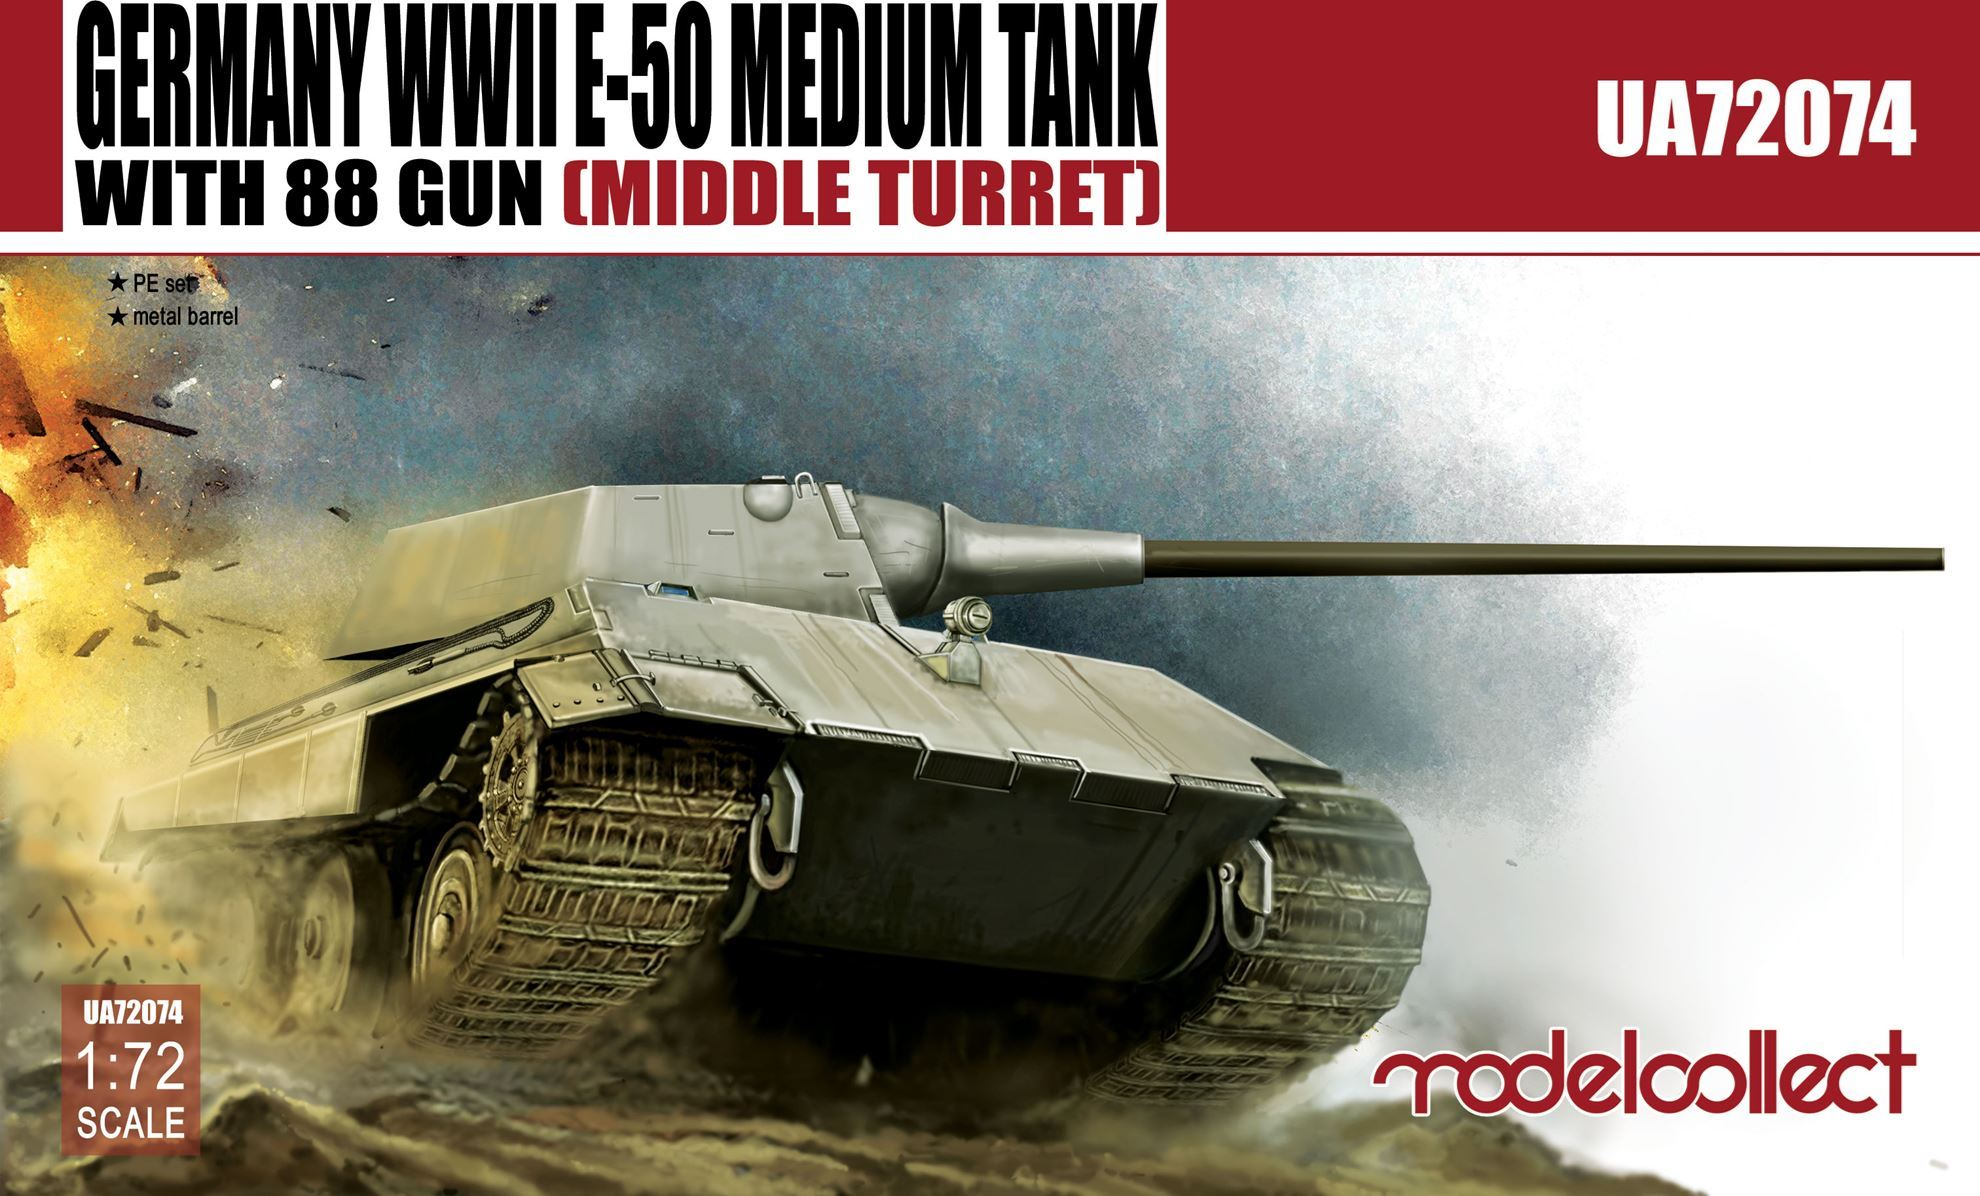 Germany WWII E-50 Medium Tank with 88 gun (middle turret)